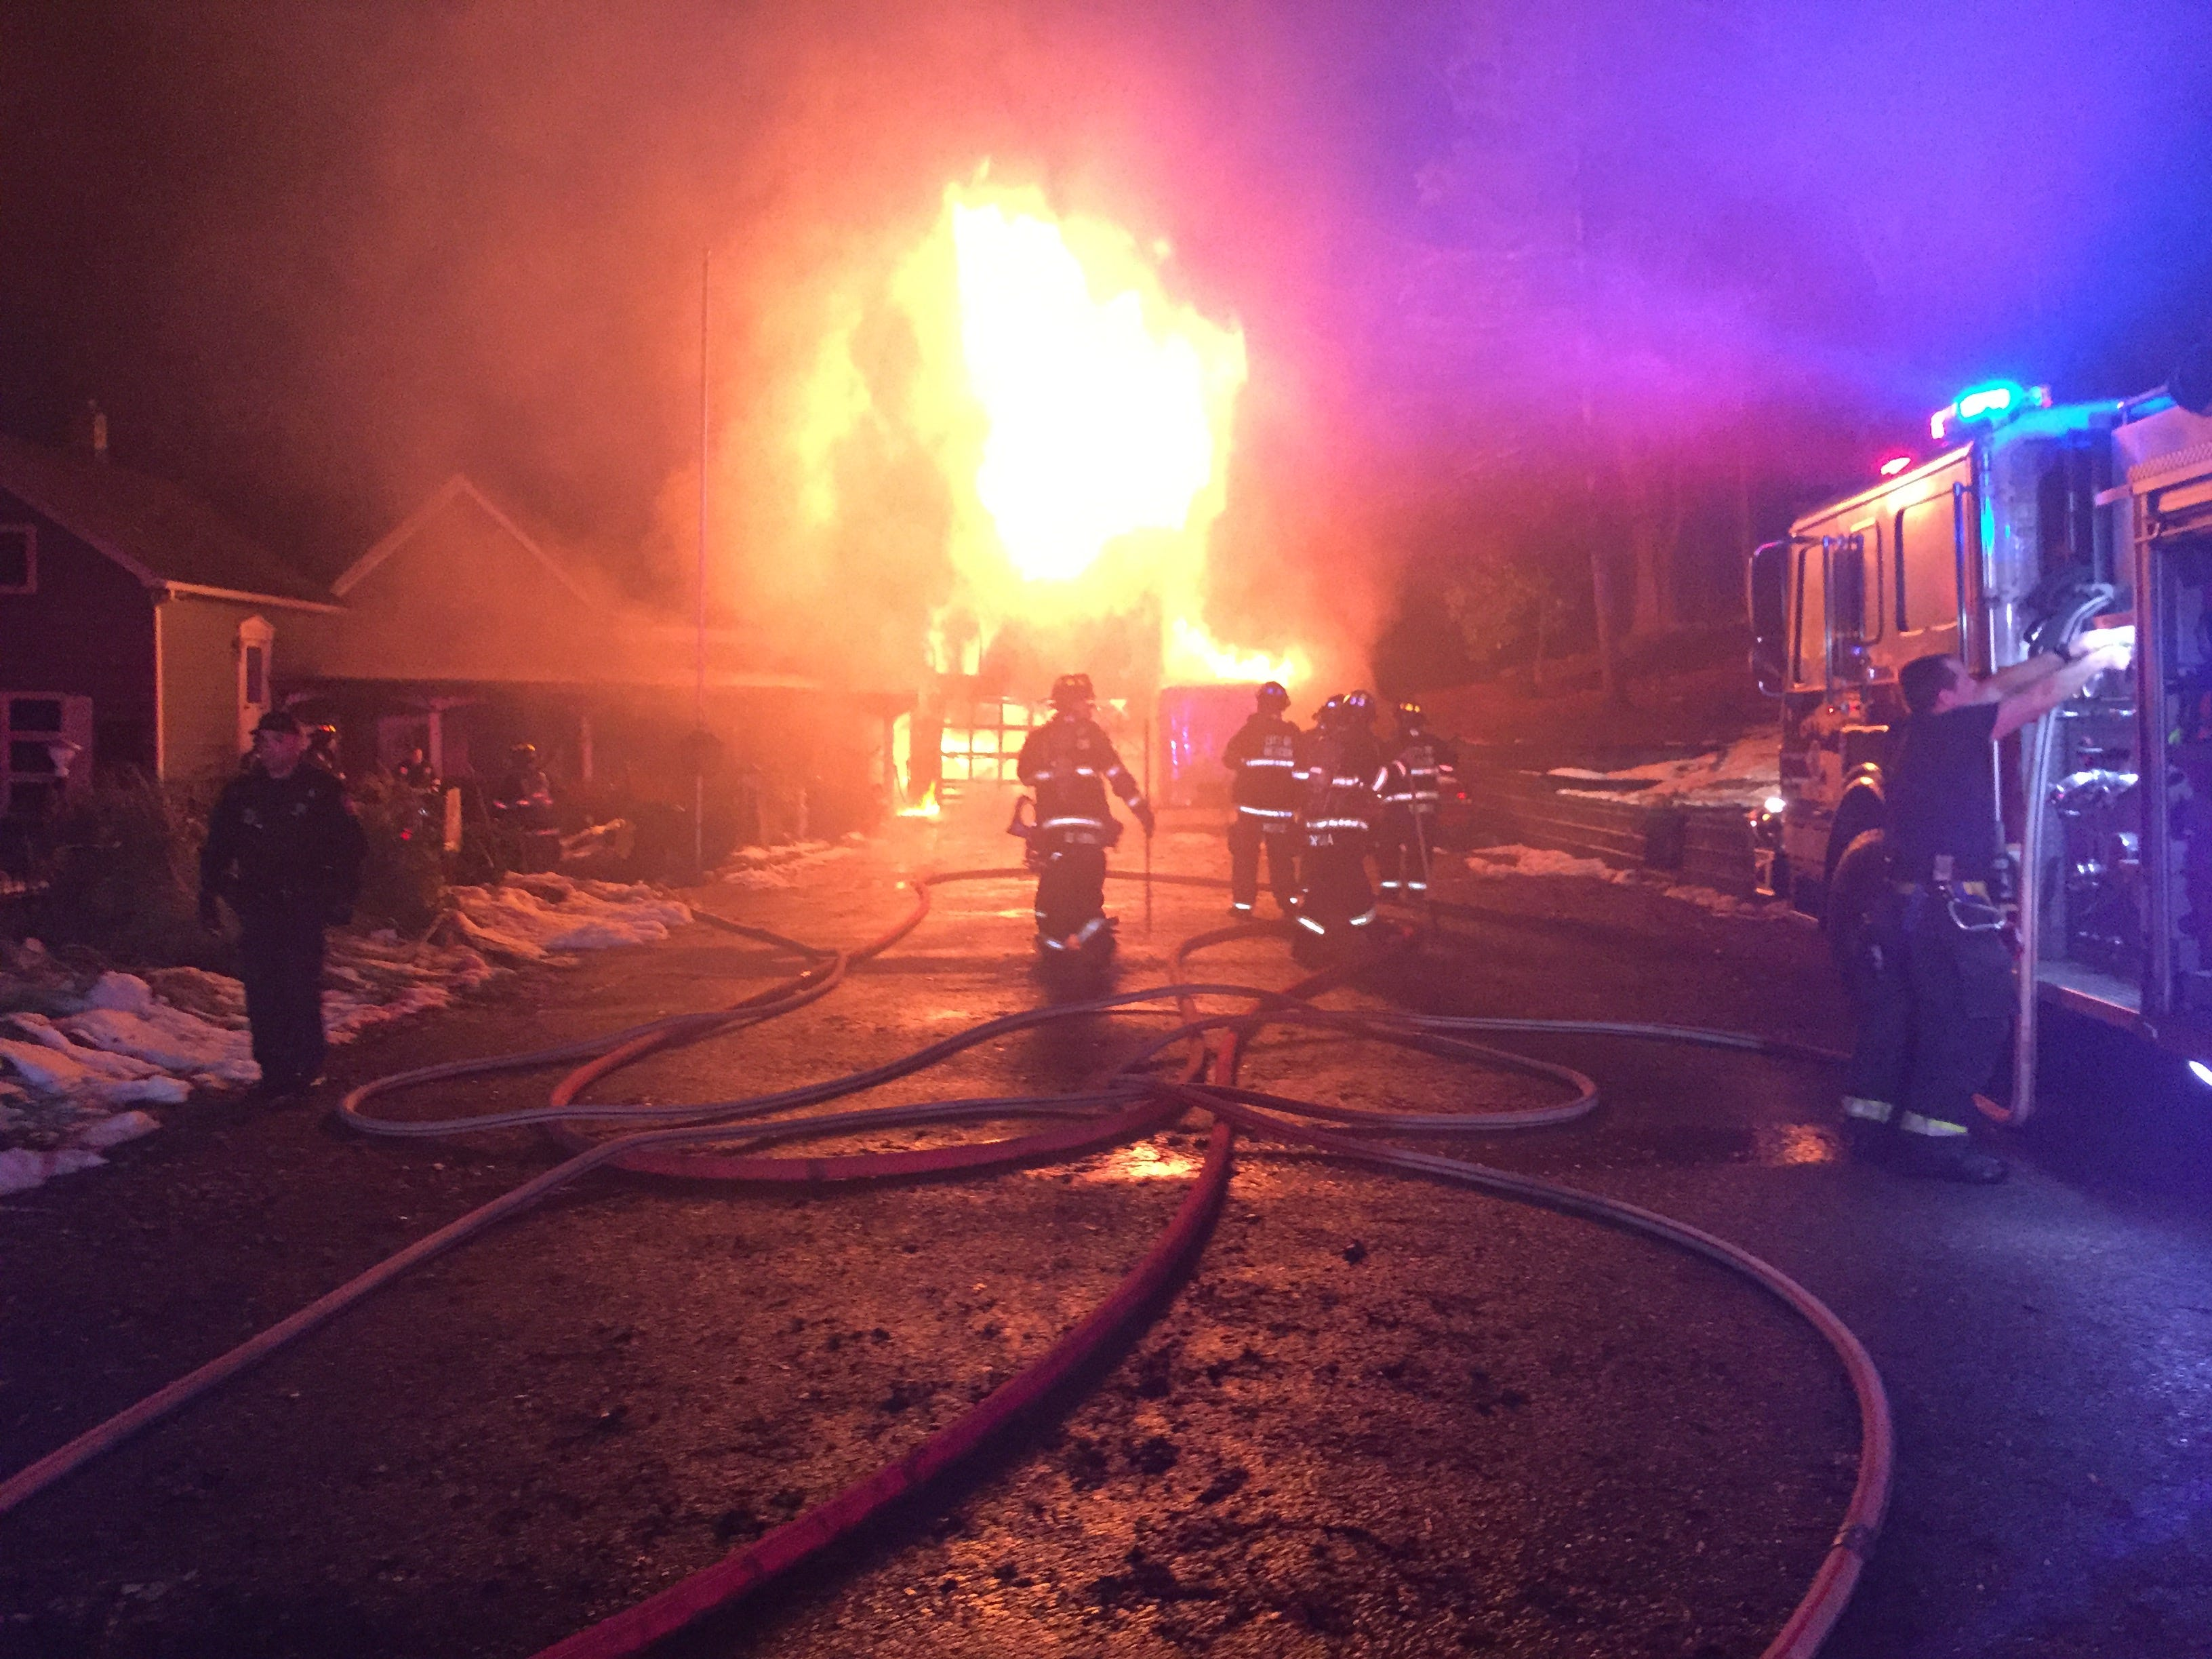 Beacon fire: 'small explosions' from car, motorcycles, snowblowers